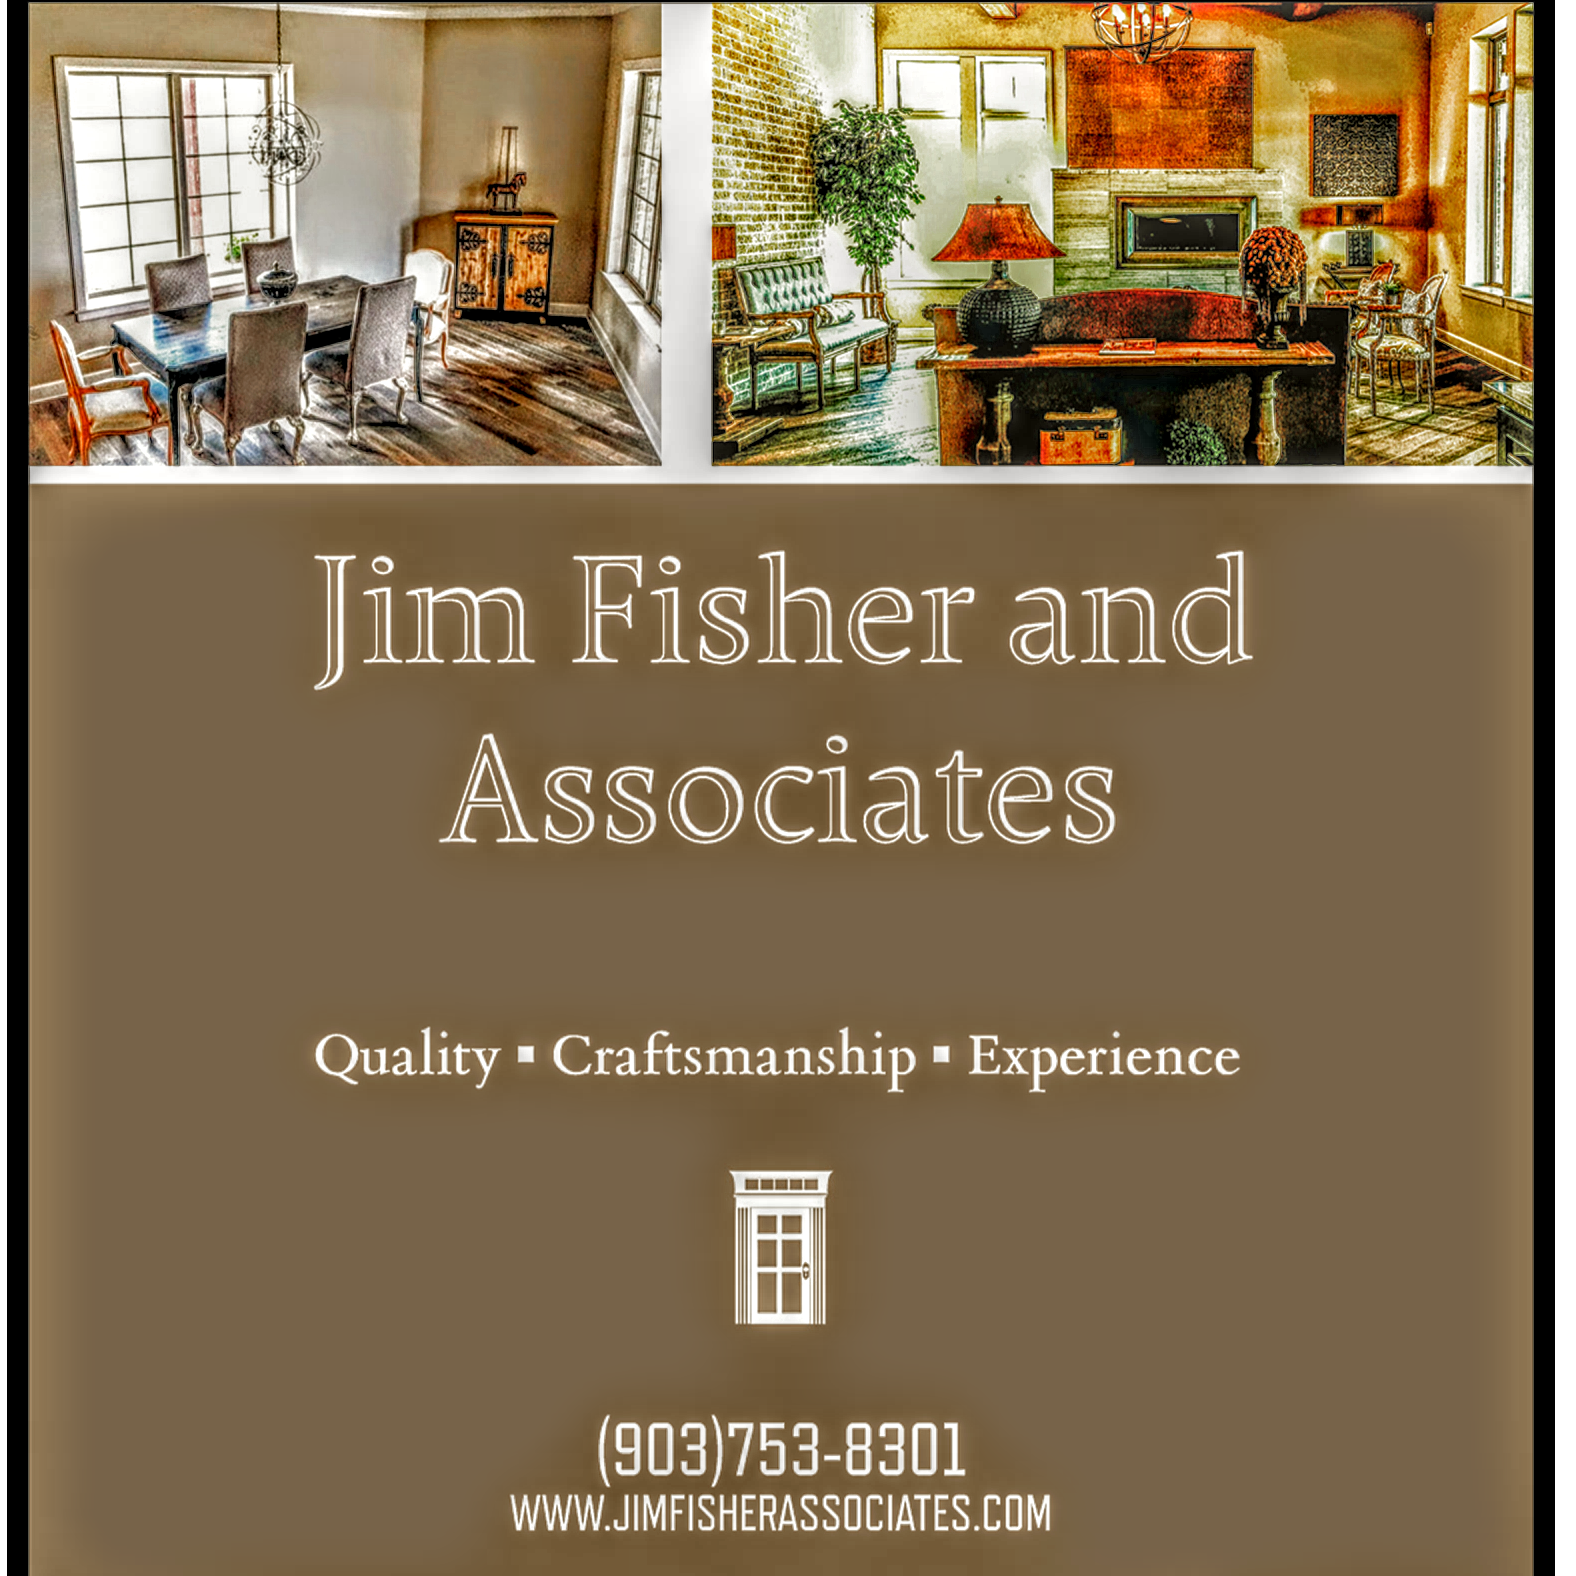 Jim Fisher and Associates